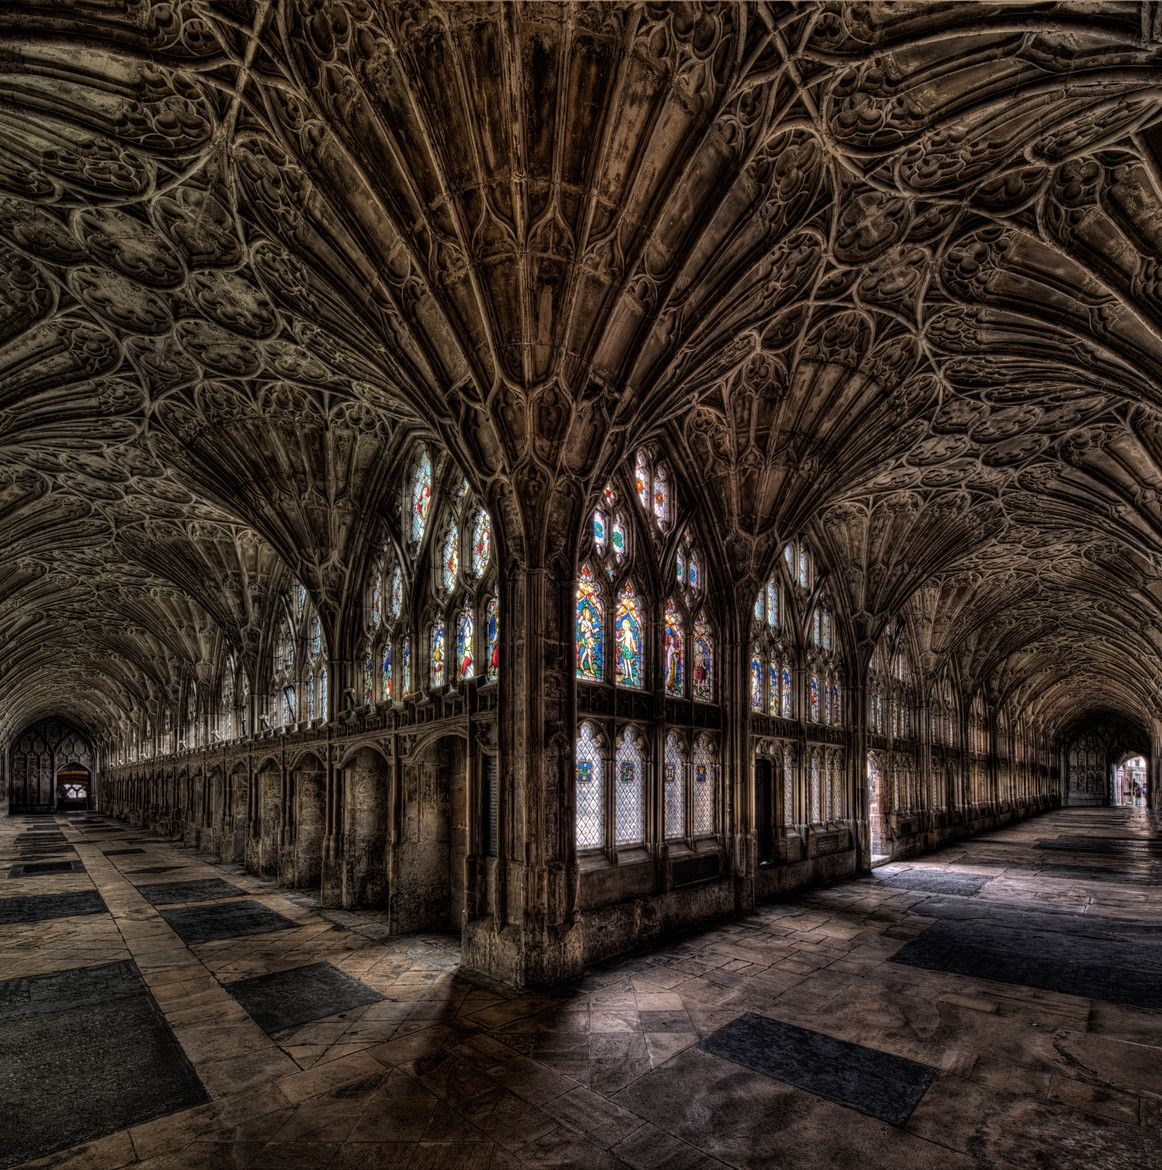 The Cloister Of Gloucester Cathedral, England, Where Parts